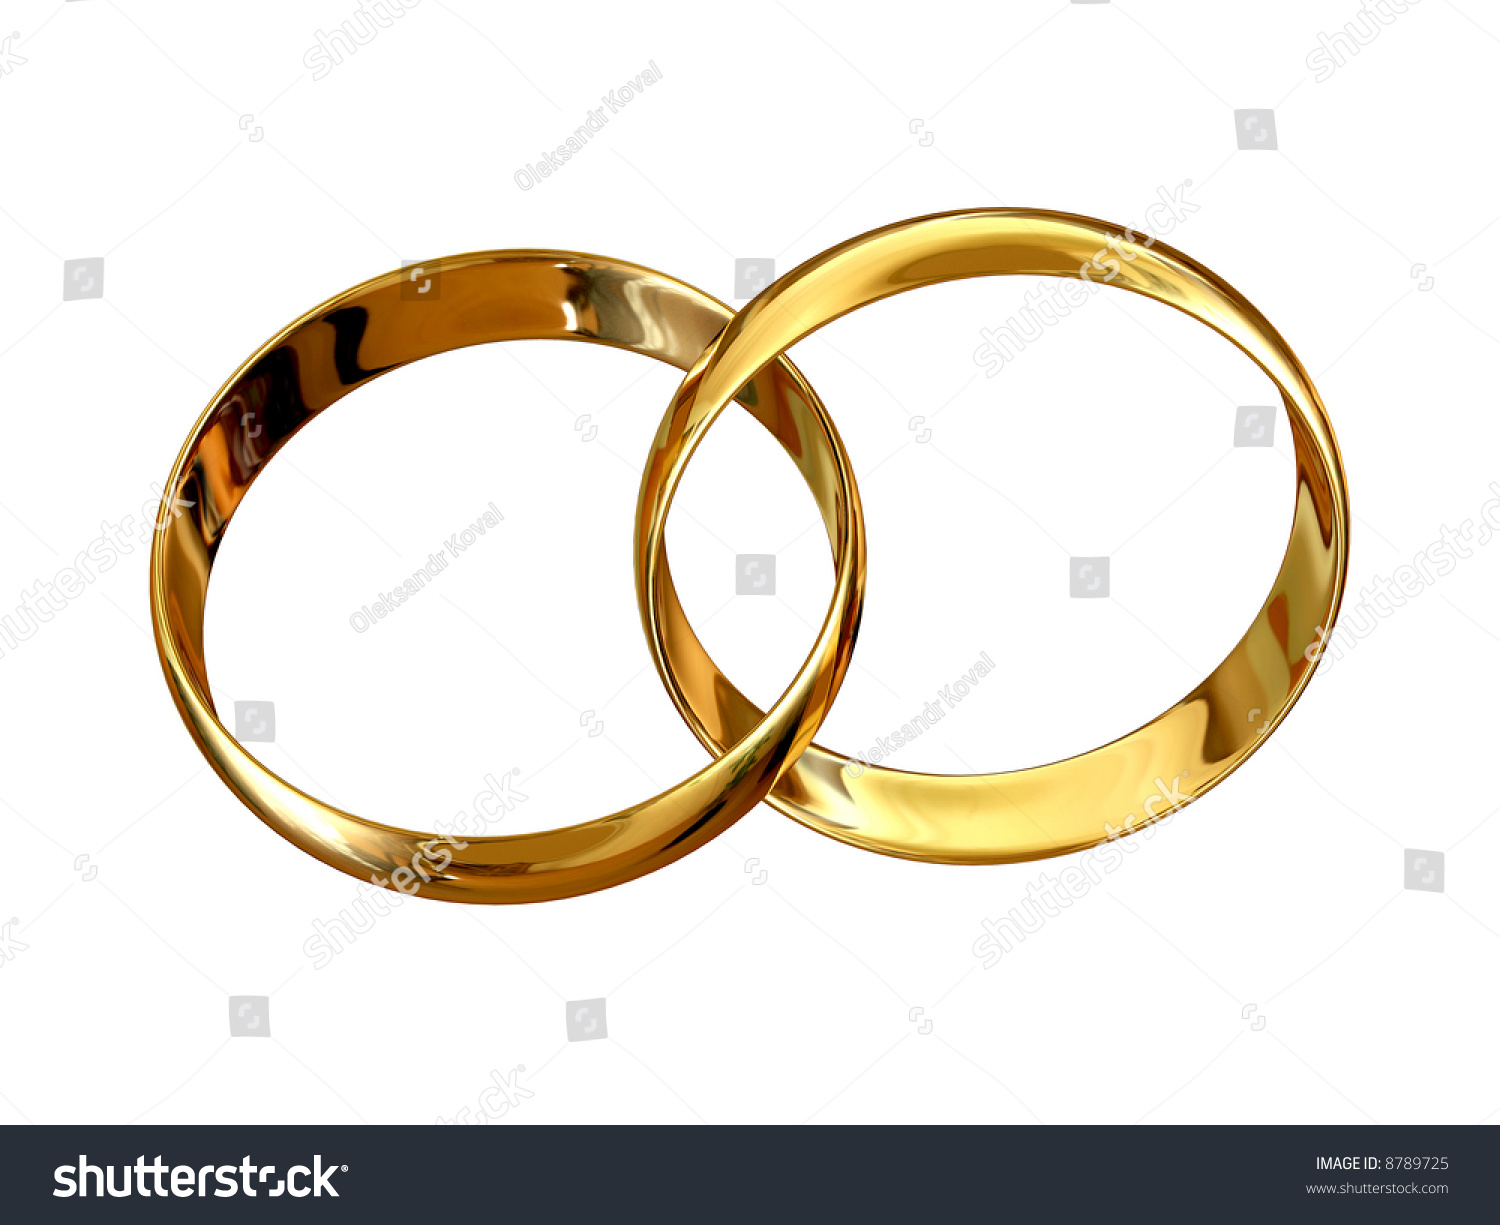 Golden Wedding Rings Connected Wedding Symbol Stock Illustration